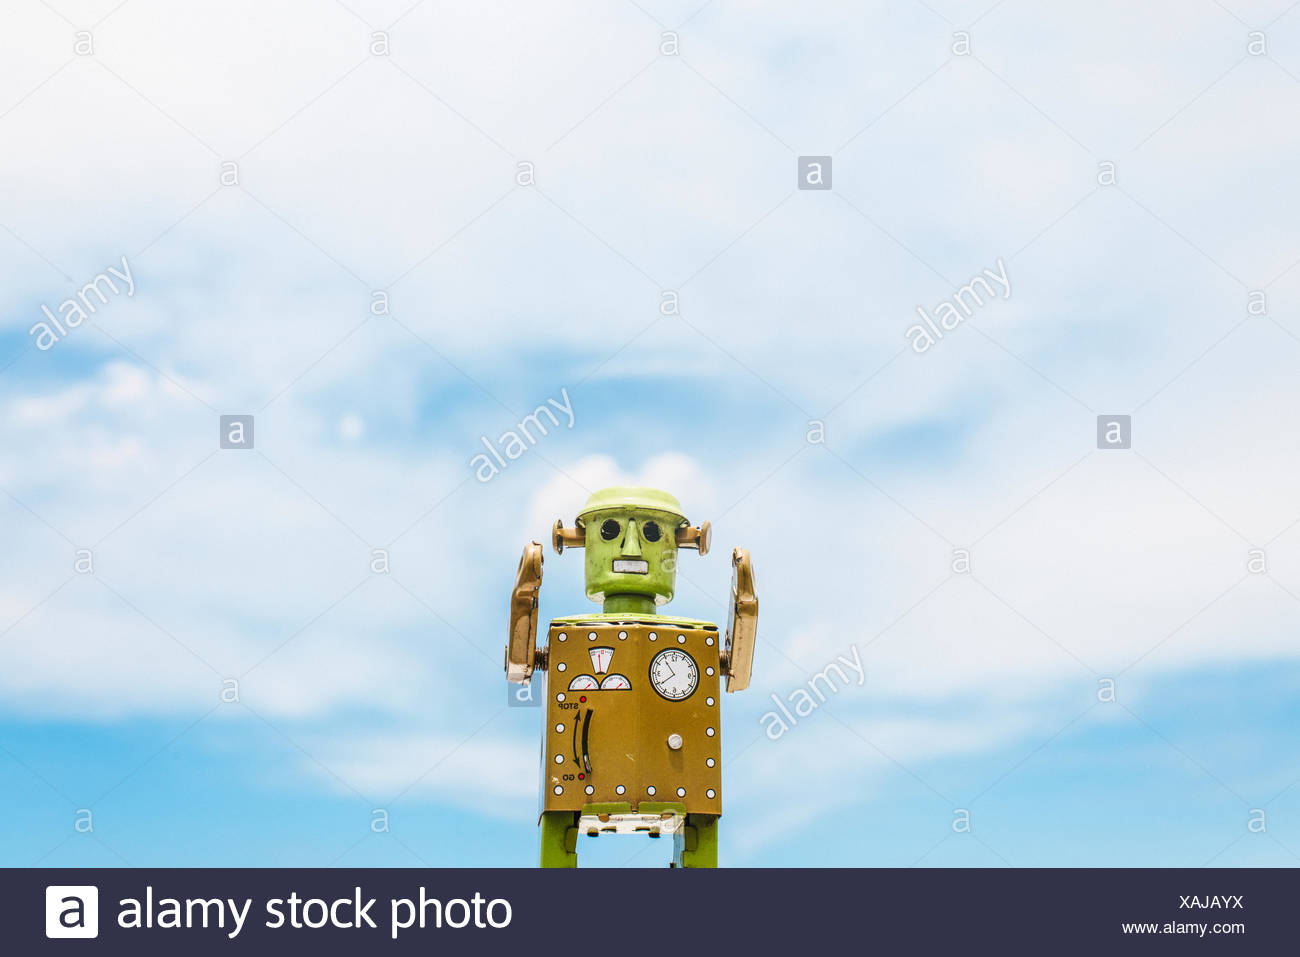 Robot Toy Imagination Retro Styled Cloudscape Sky Concept - Stock Image